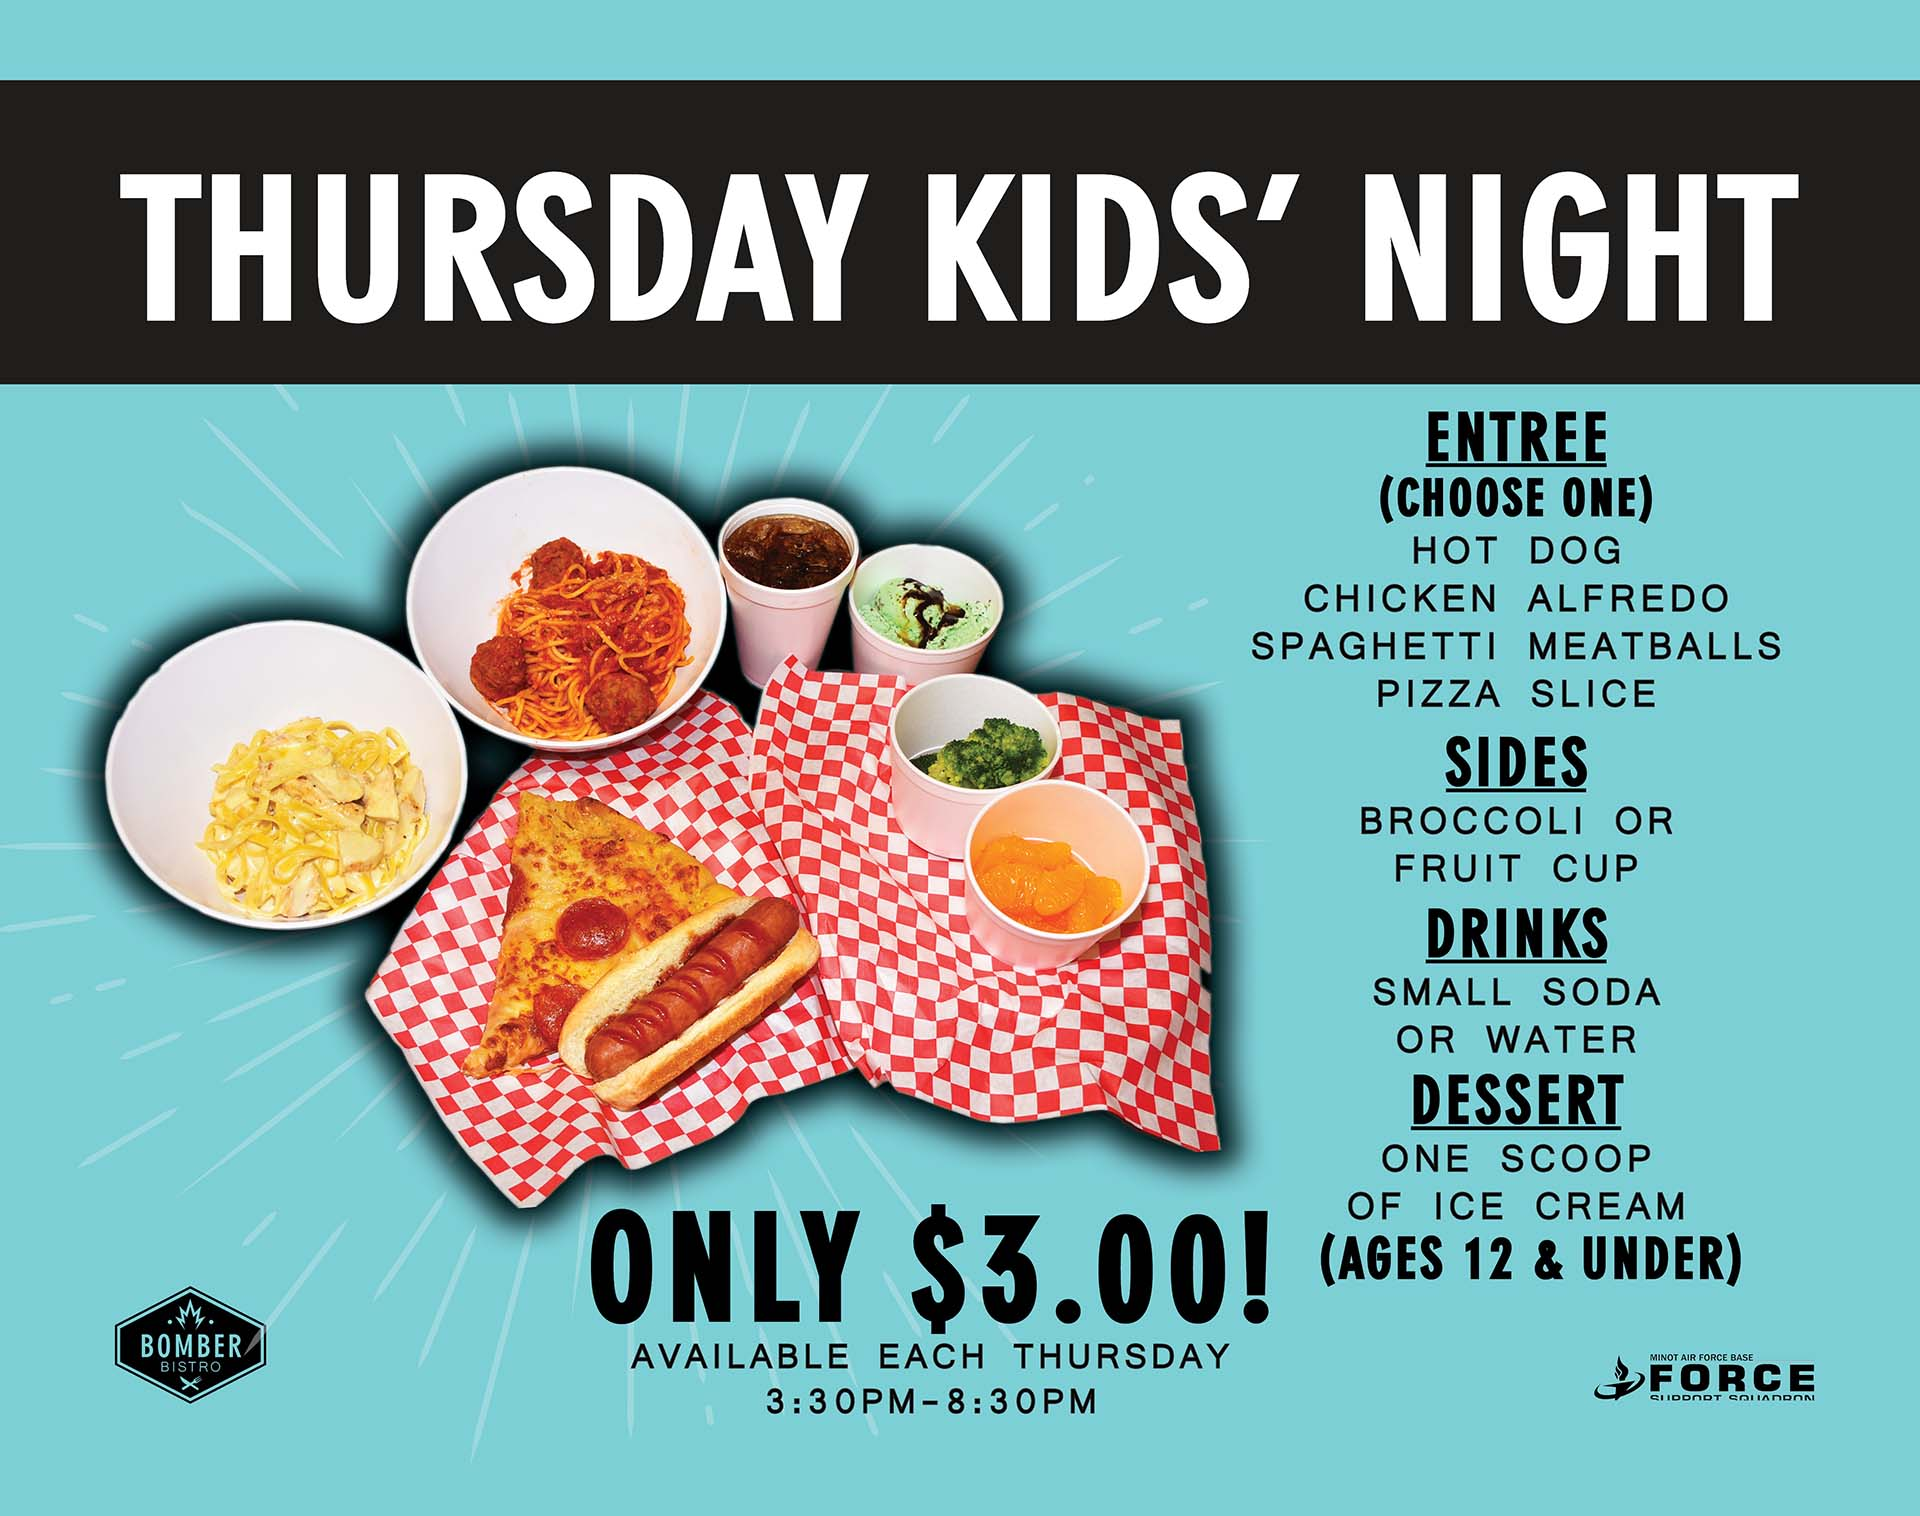 Kids' Night at Bistro